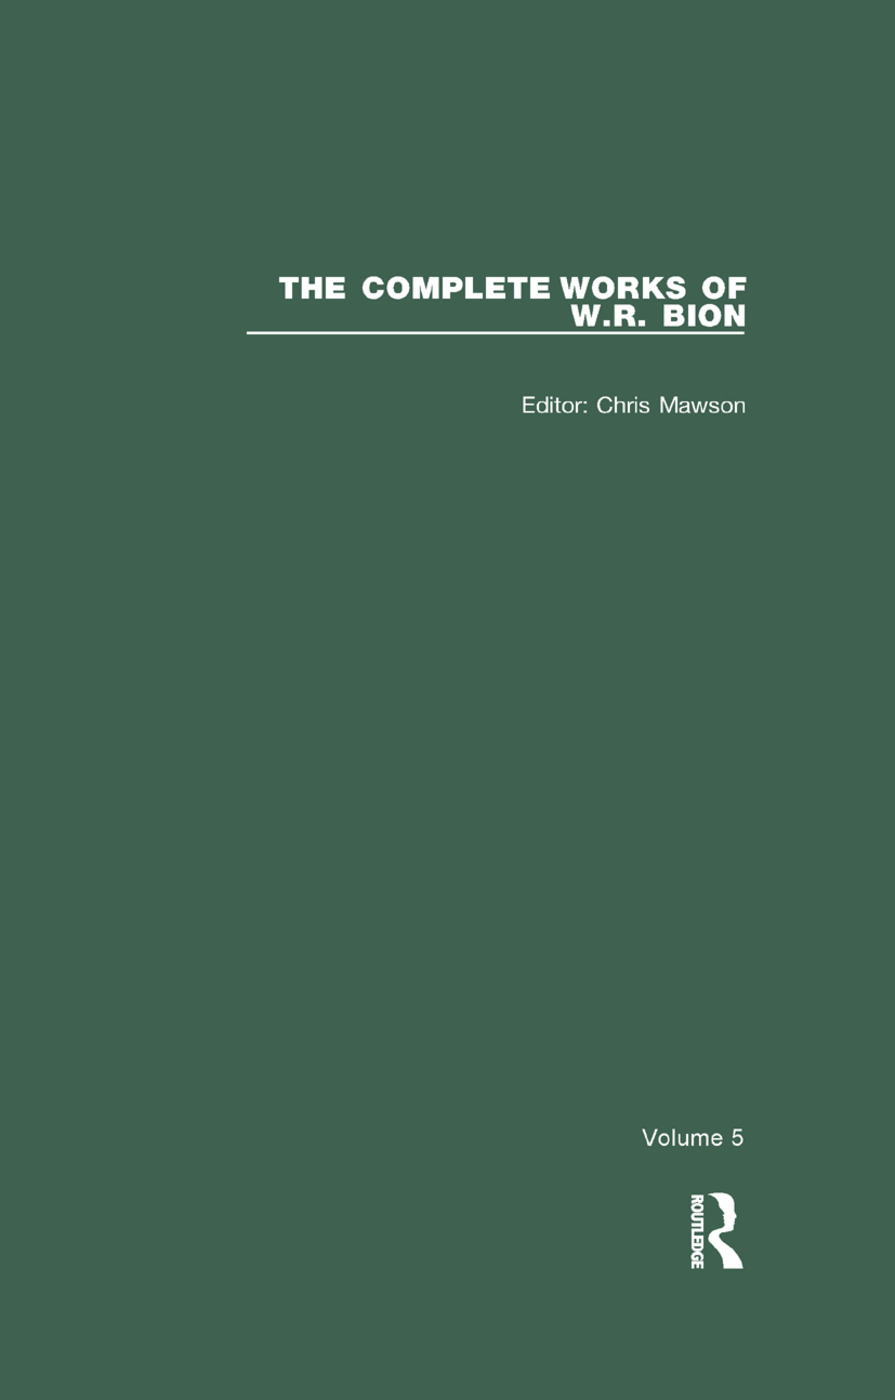 The Complete Works of W. R. Bion